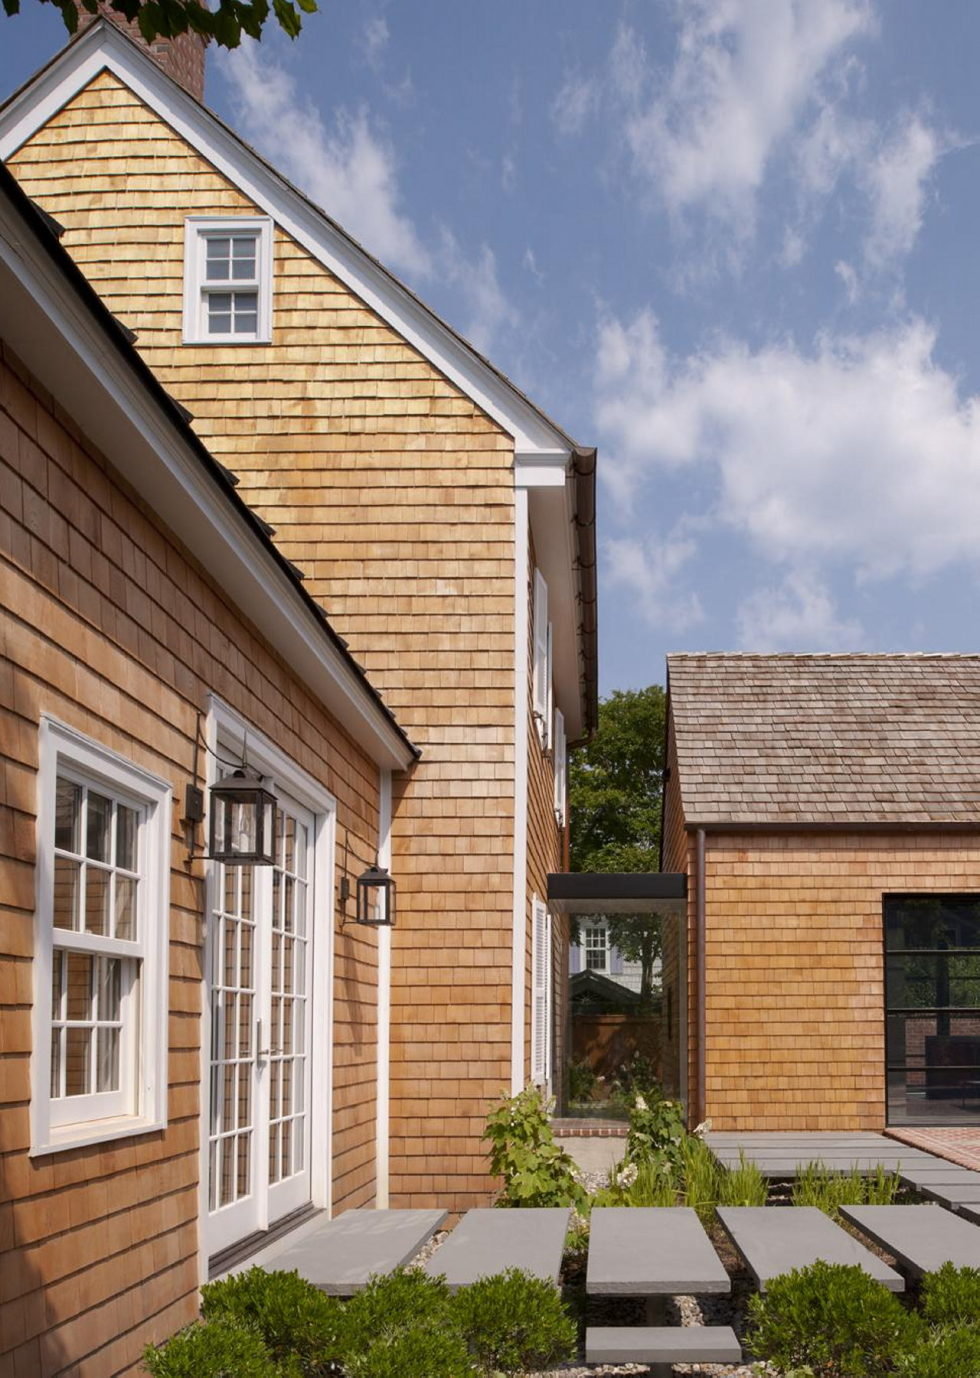 Renovation Of The Historical House From Robert M. Gurney Architect Studio 22